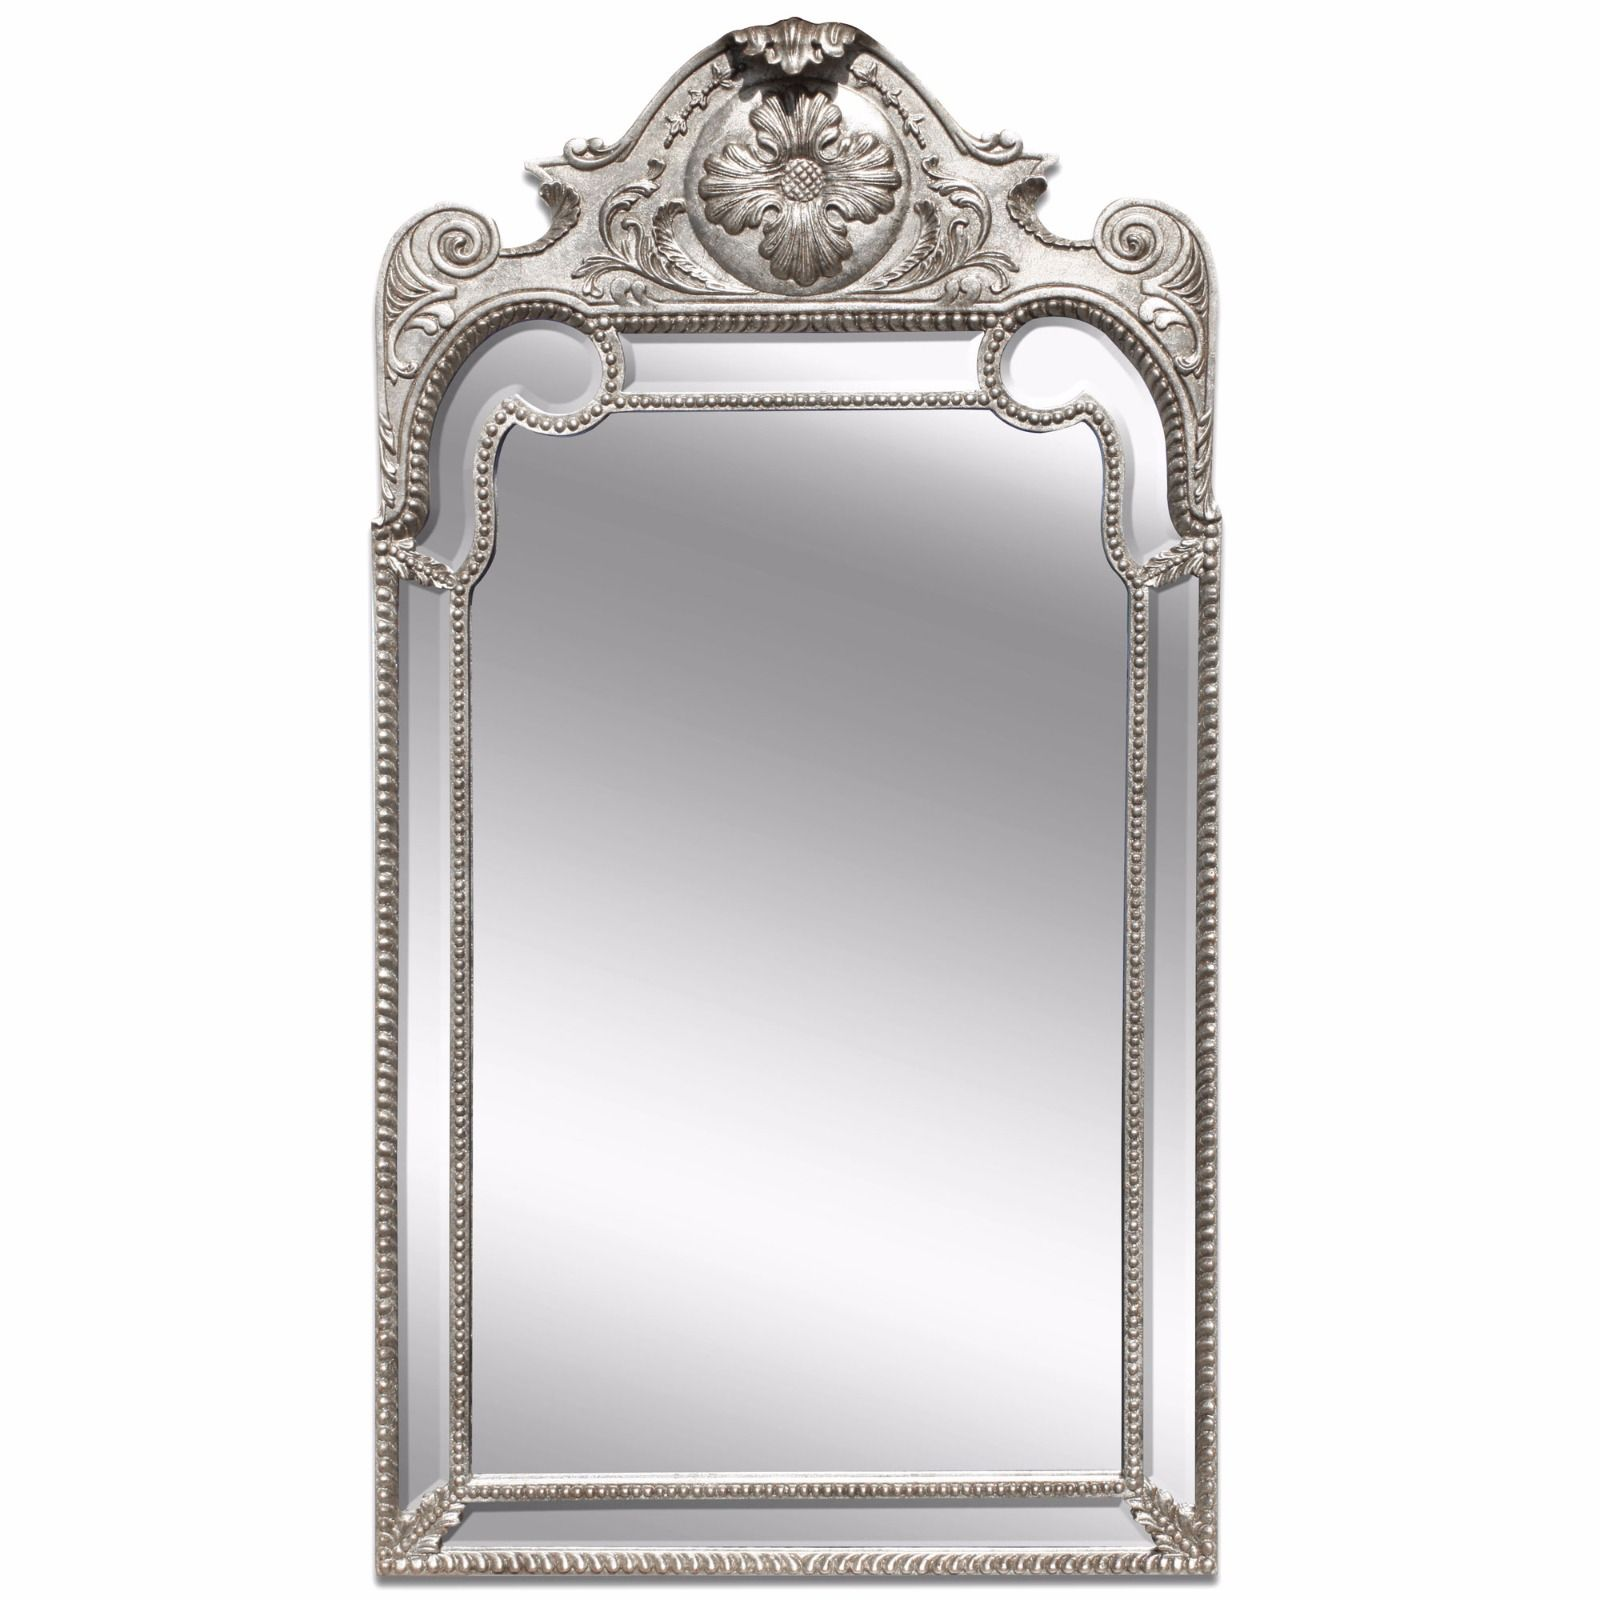 Queen Anne style silver giltwood mirror